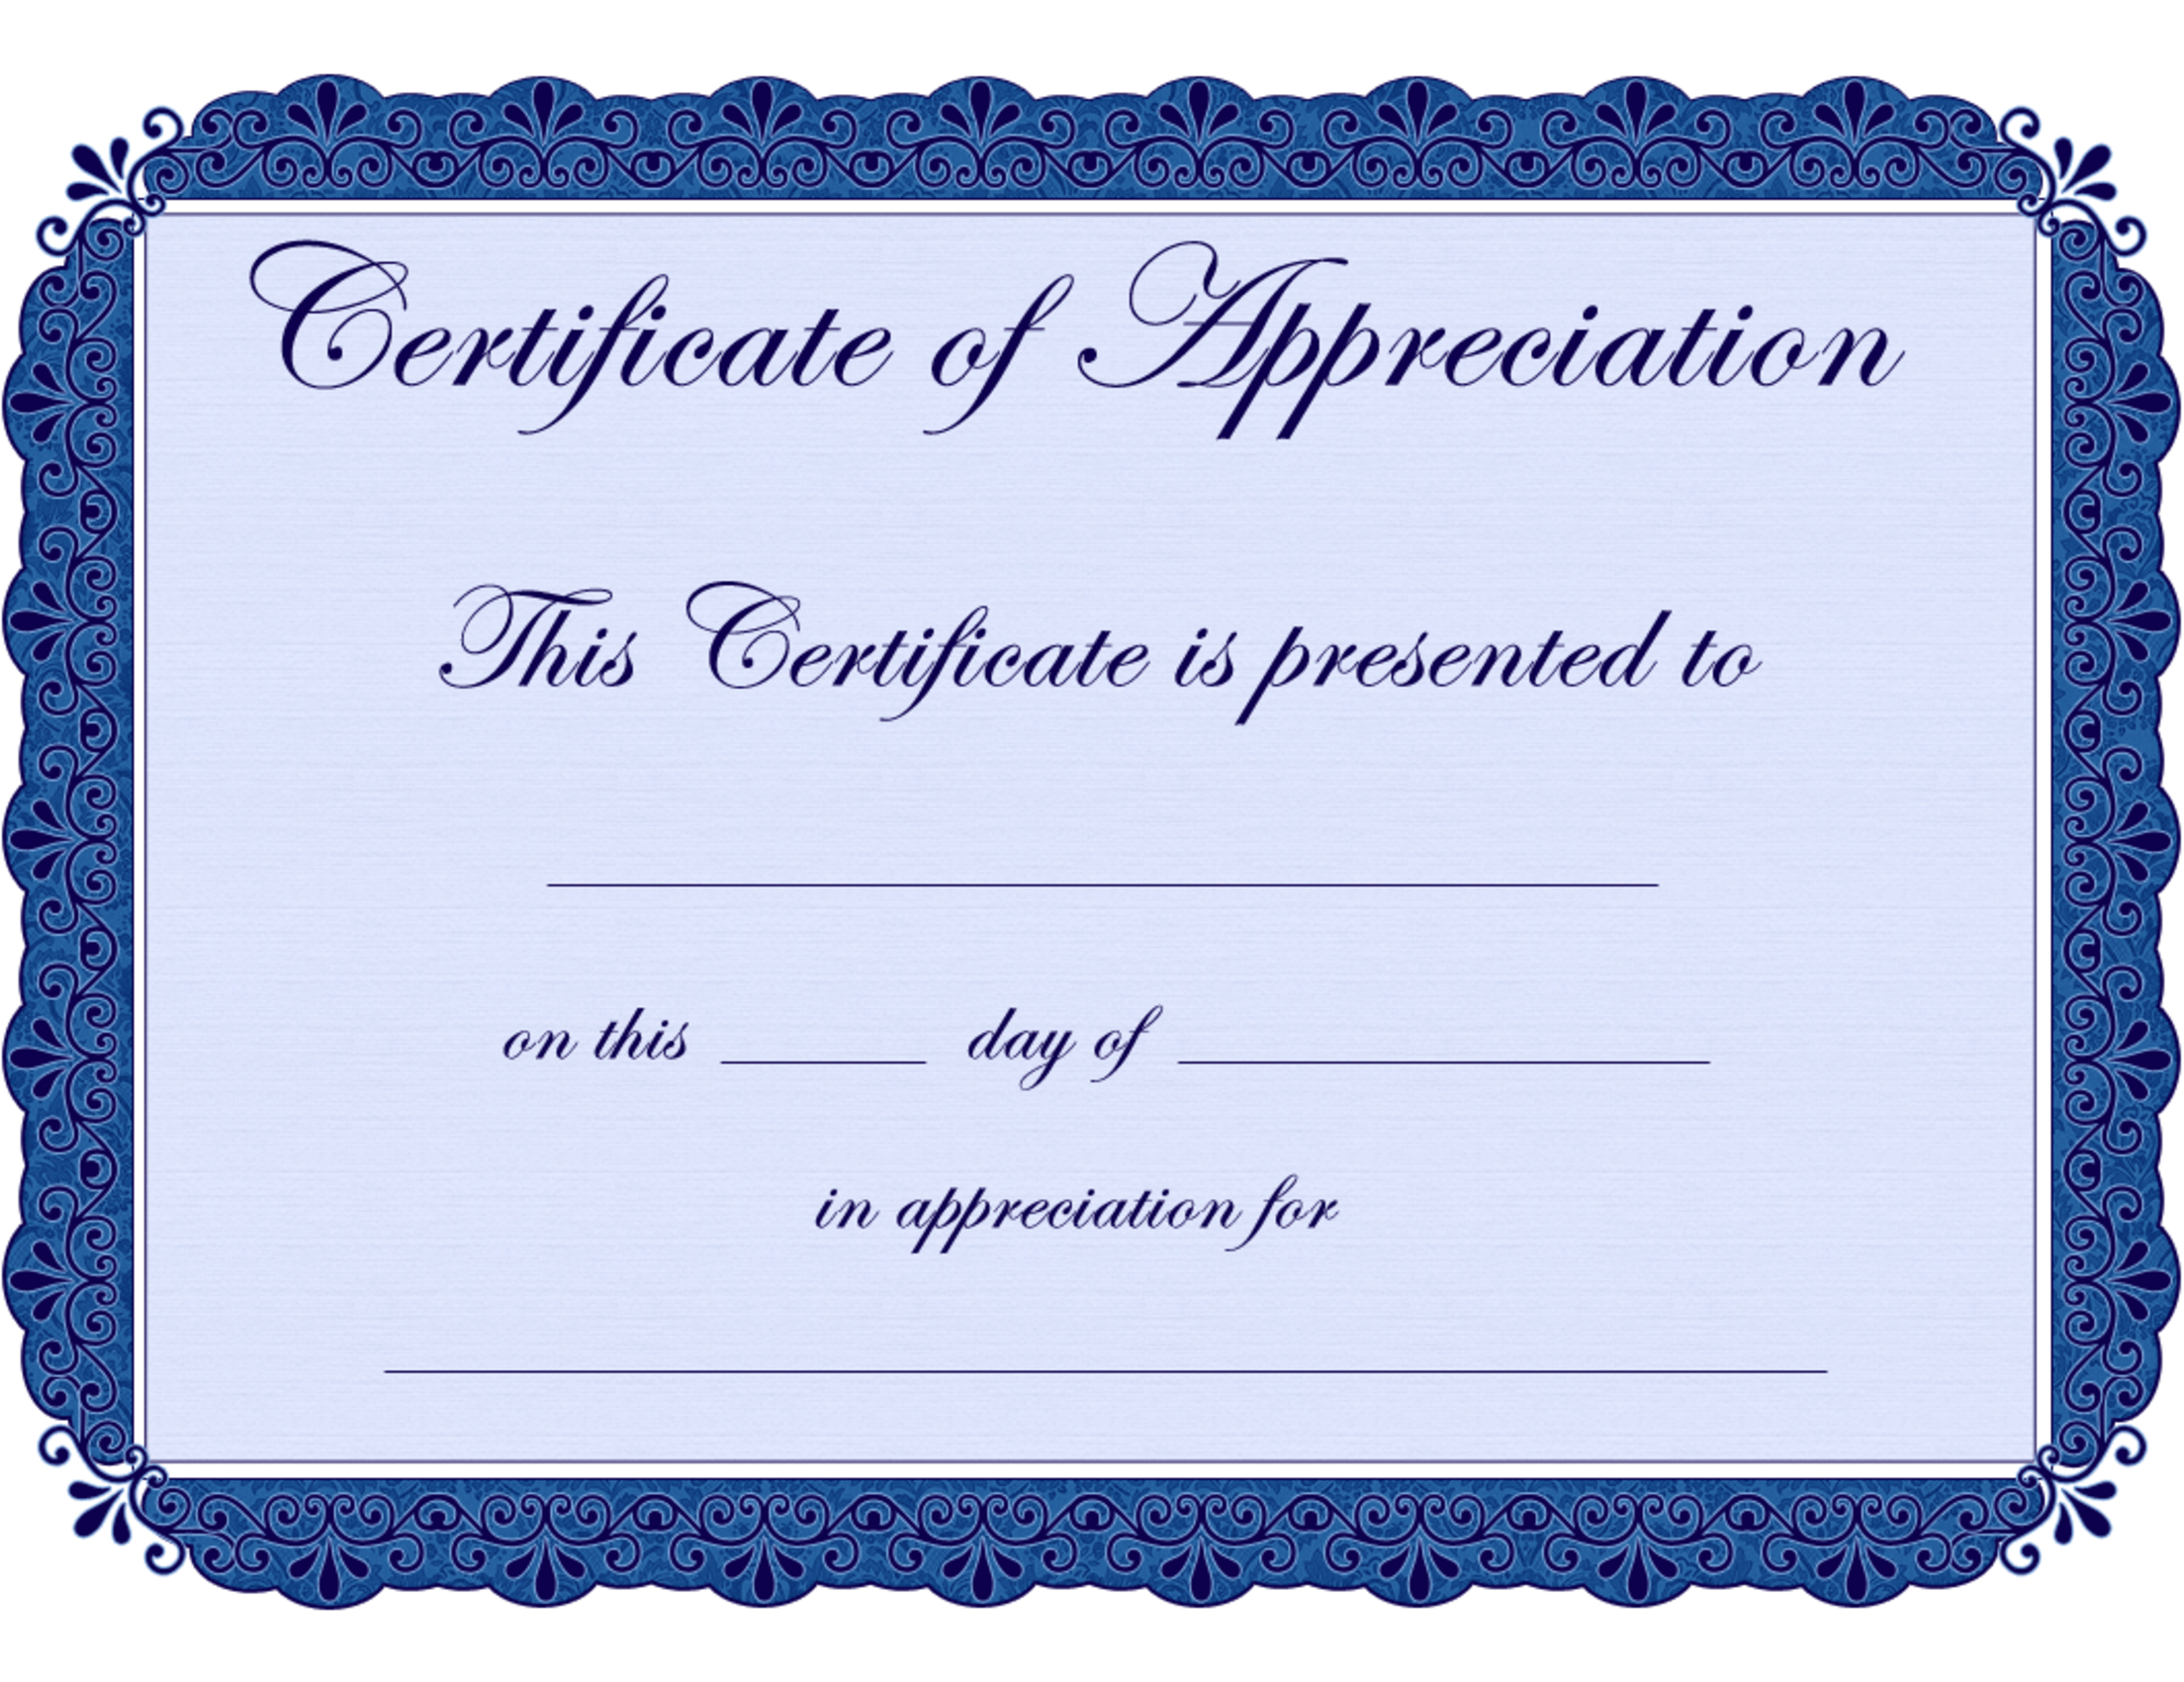 Free Printable Certificates Certificate Of Appreciation inside Certificate Of Completion Free Template Word